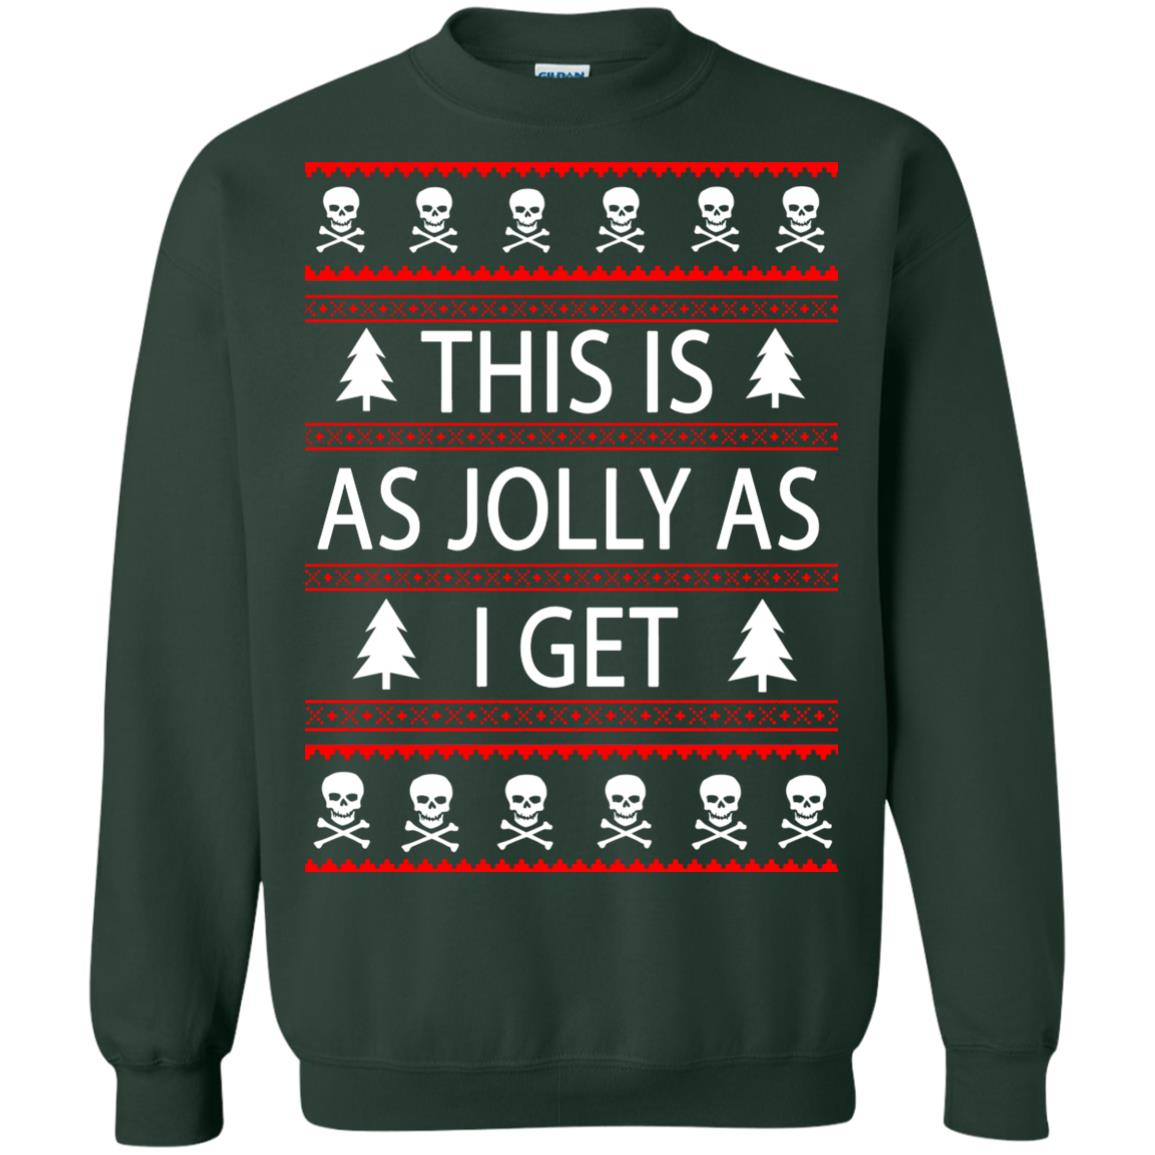 image 3168 - This Is as Jolly as I Get Emo Gothic Christmas Sweatshirts, Hoodie